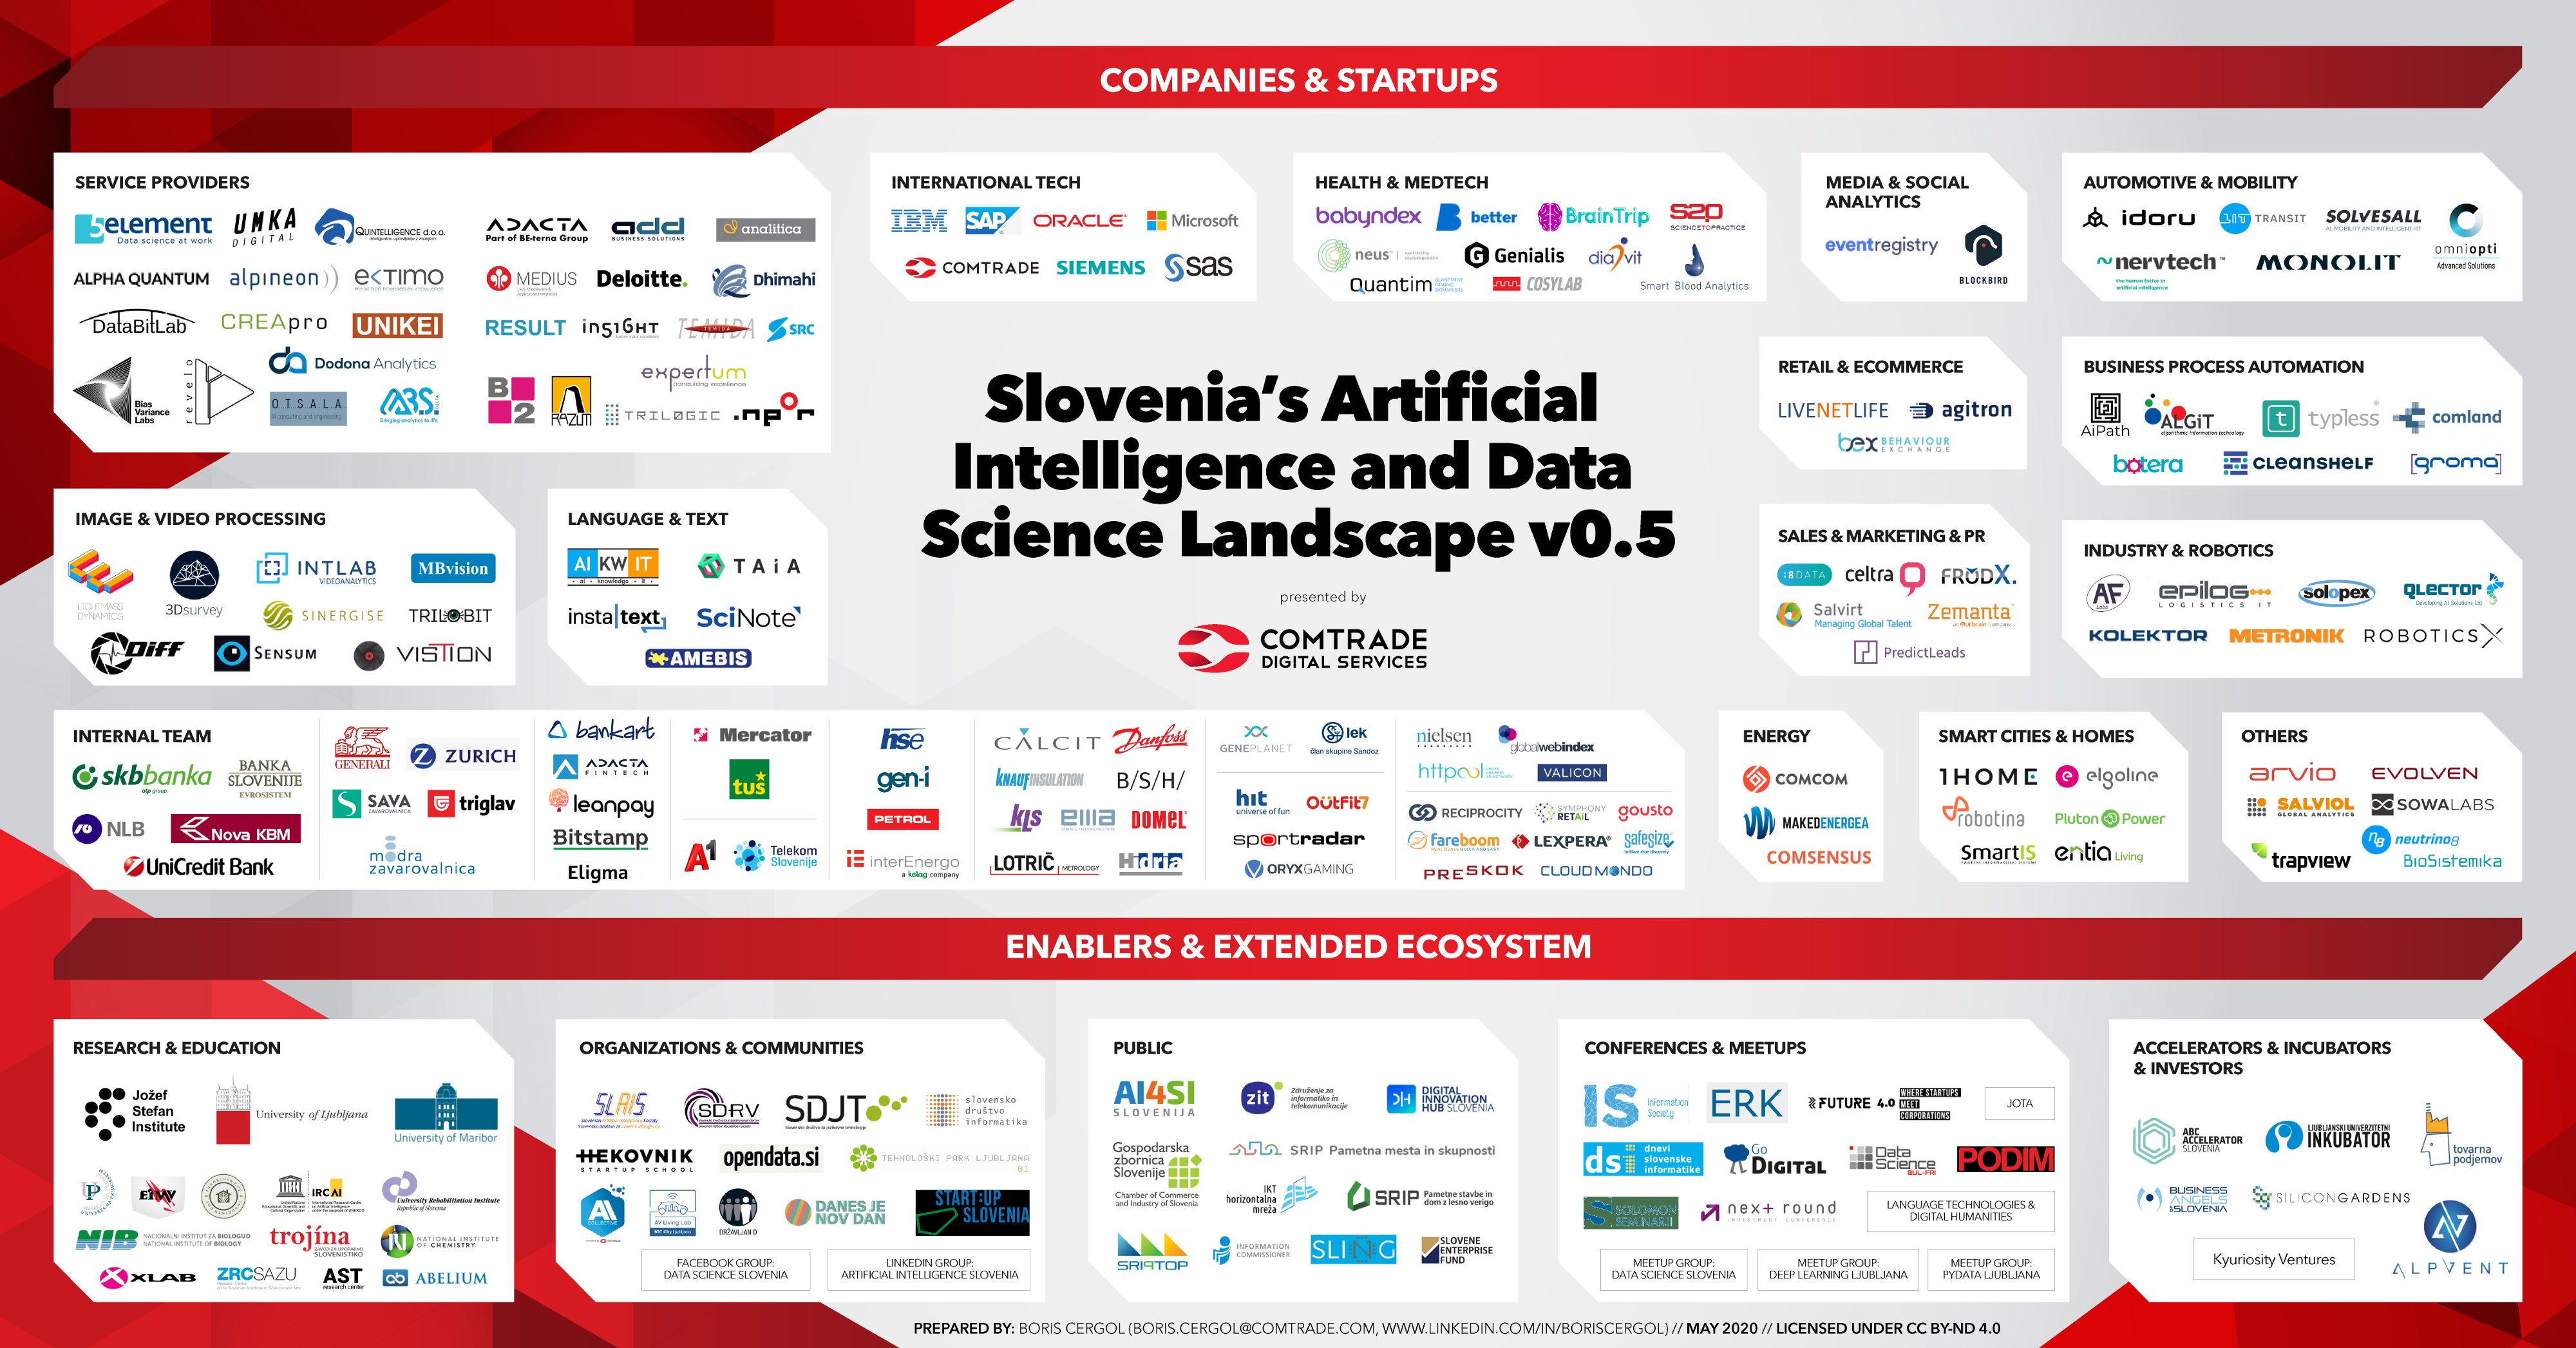 Slovenias Artificial Intelligence and Data Science Landscape